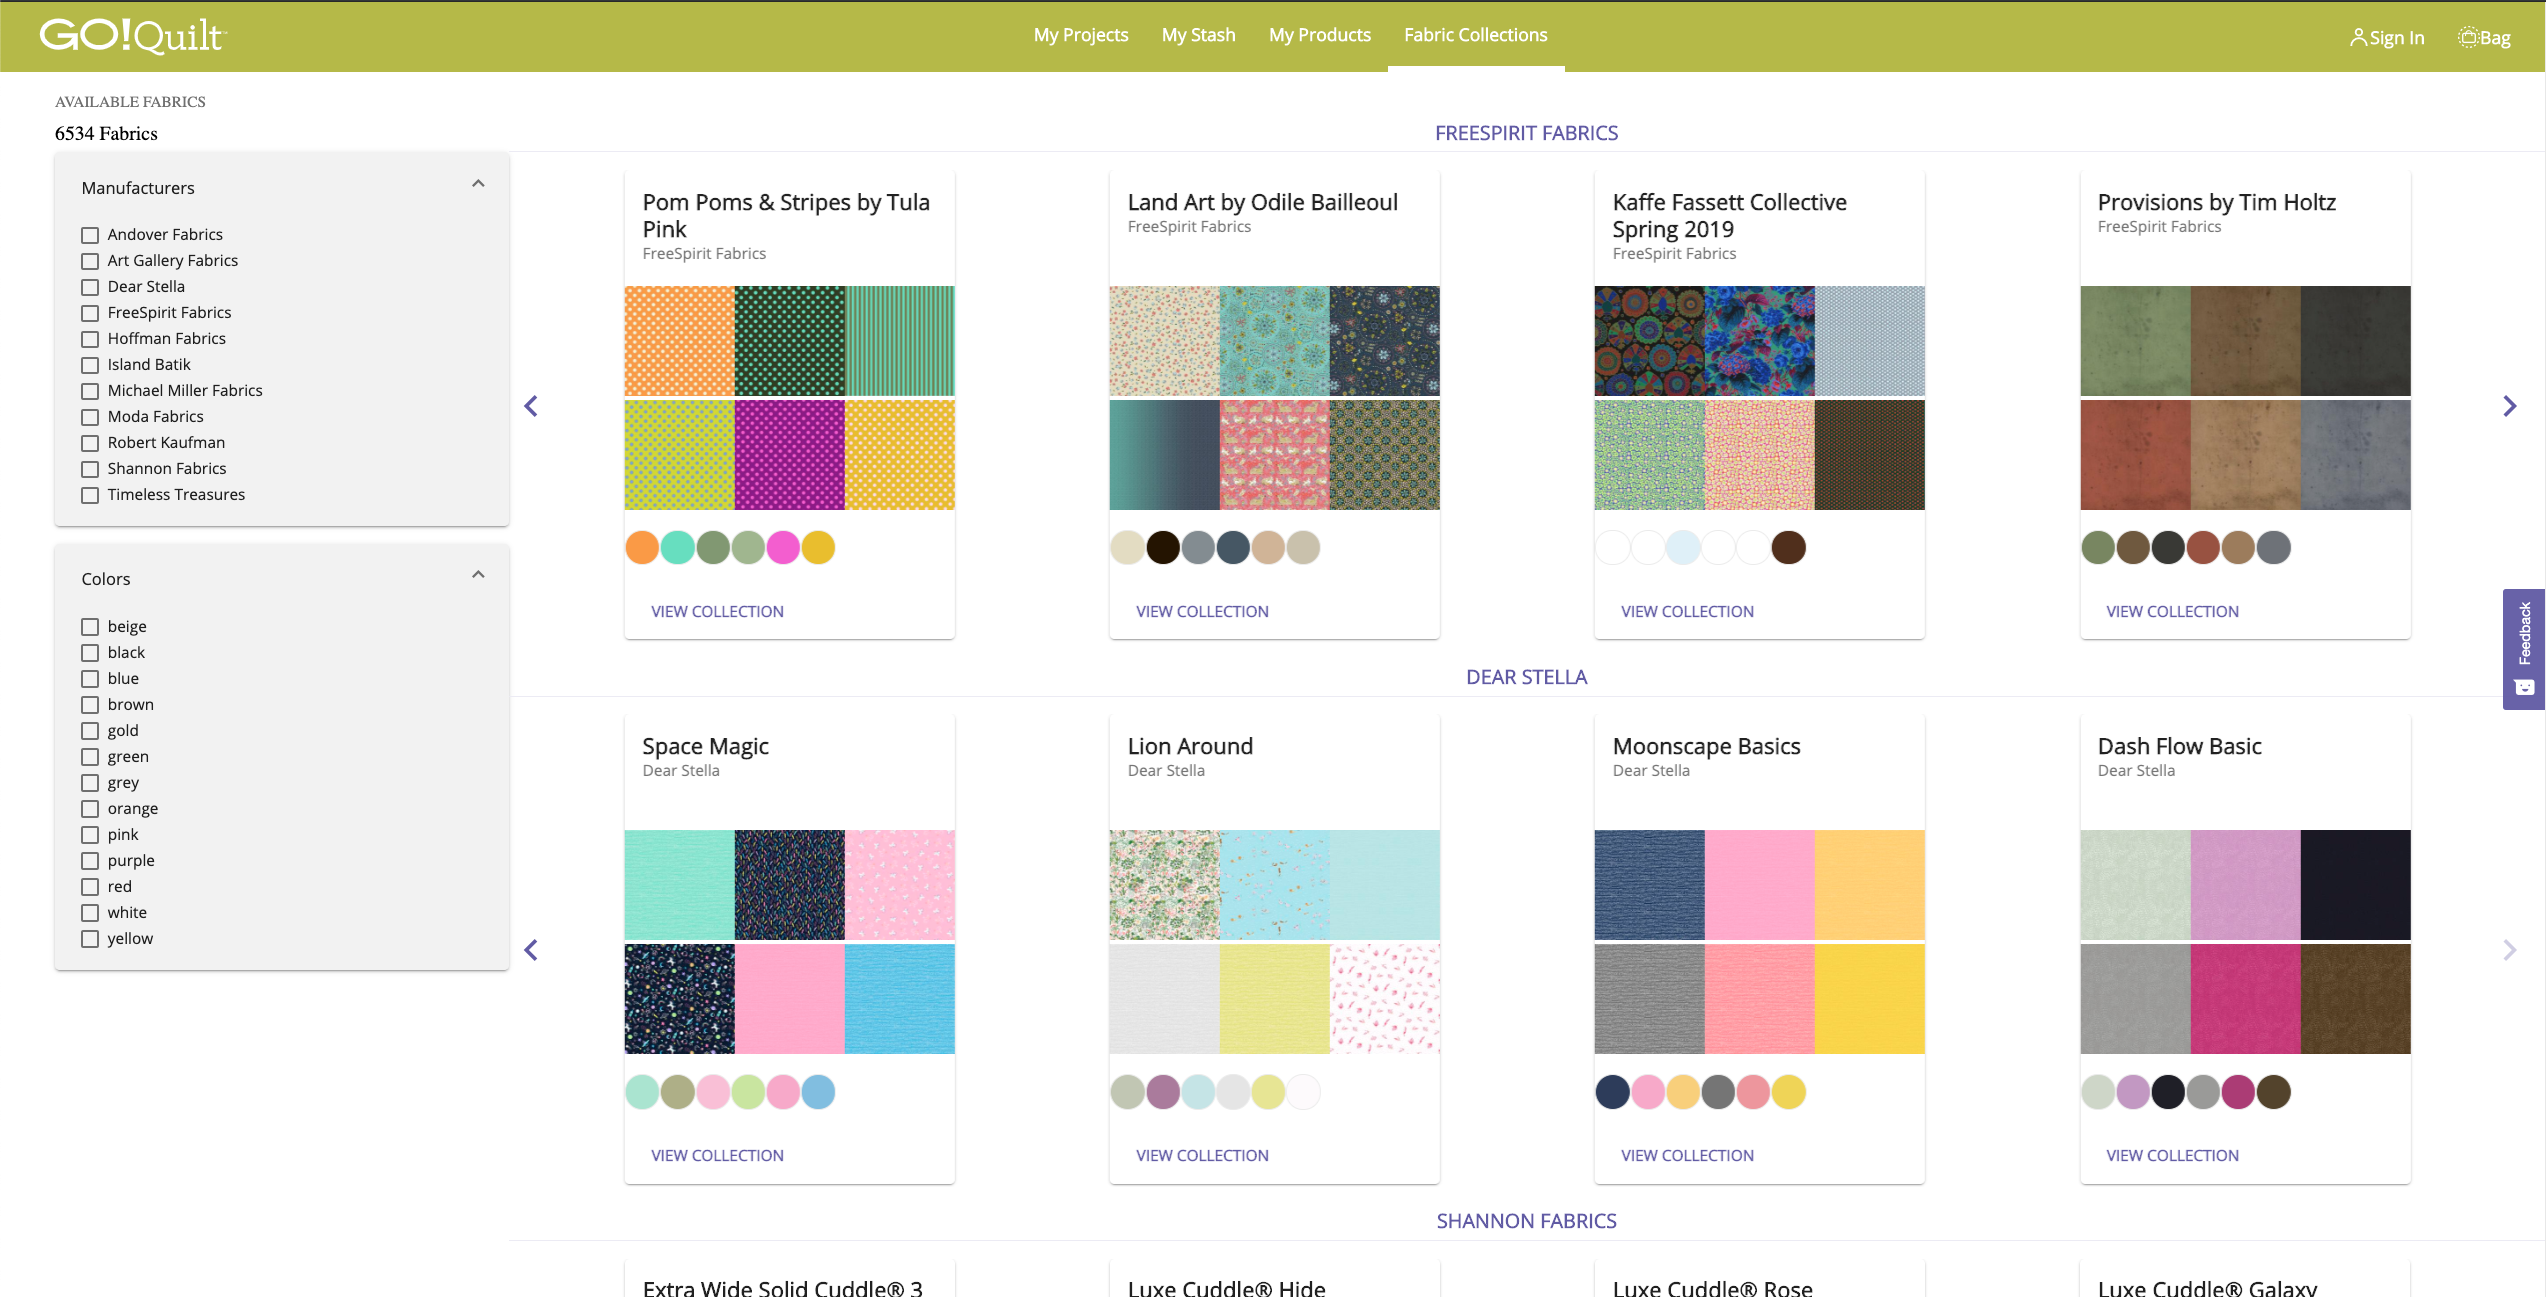 GO Quilt Fabric Collections screenshot for holiday gifting ideas